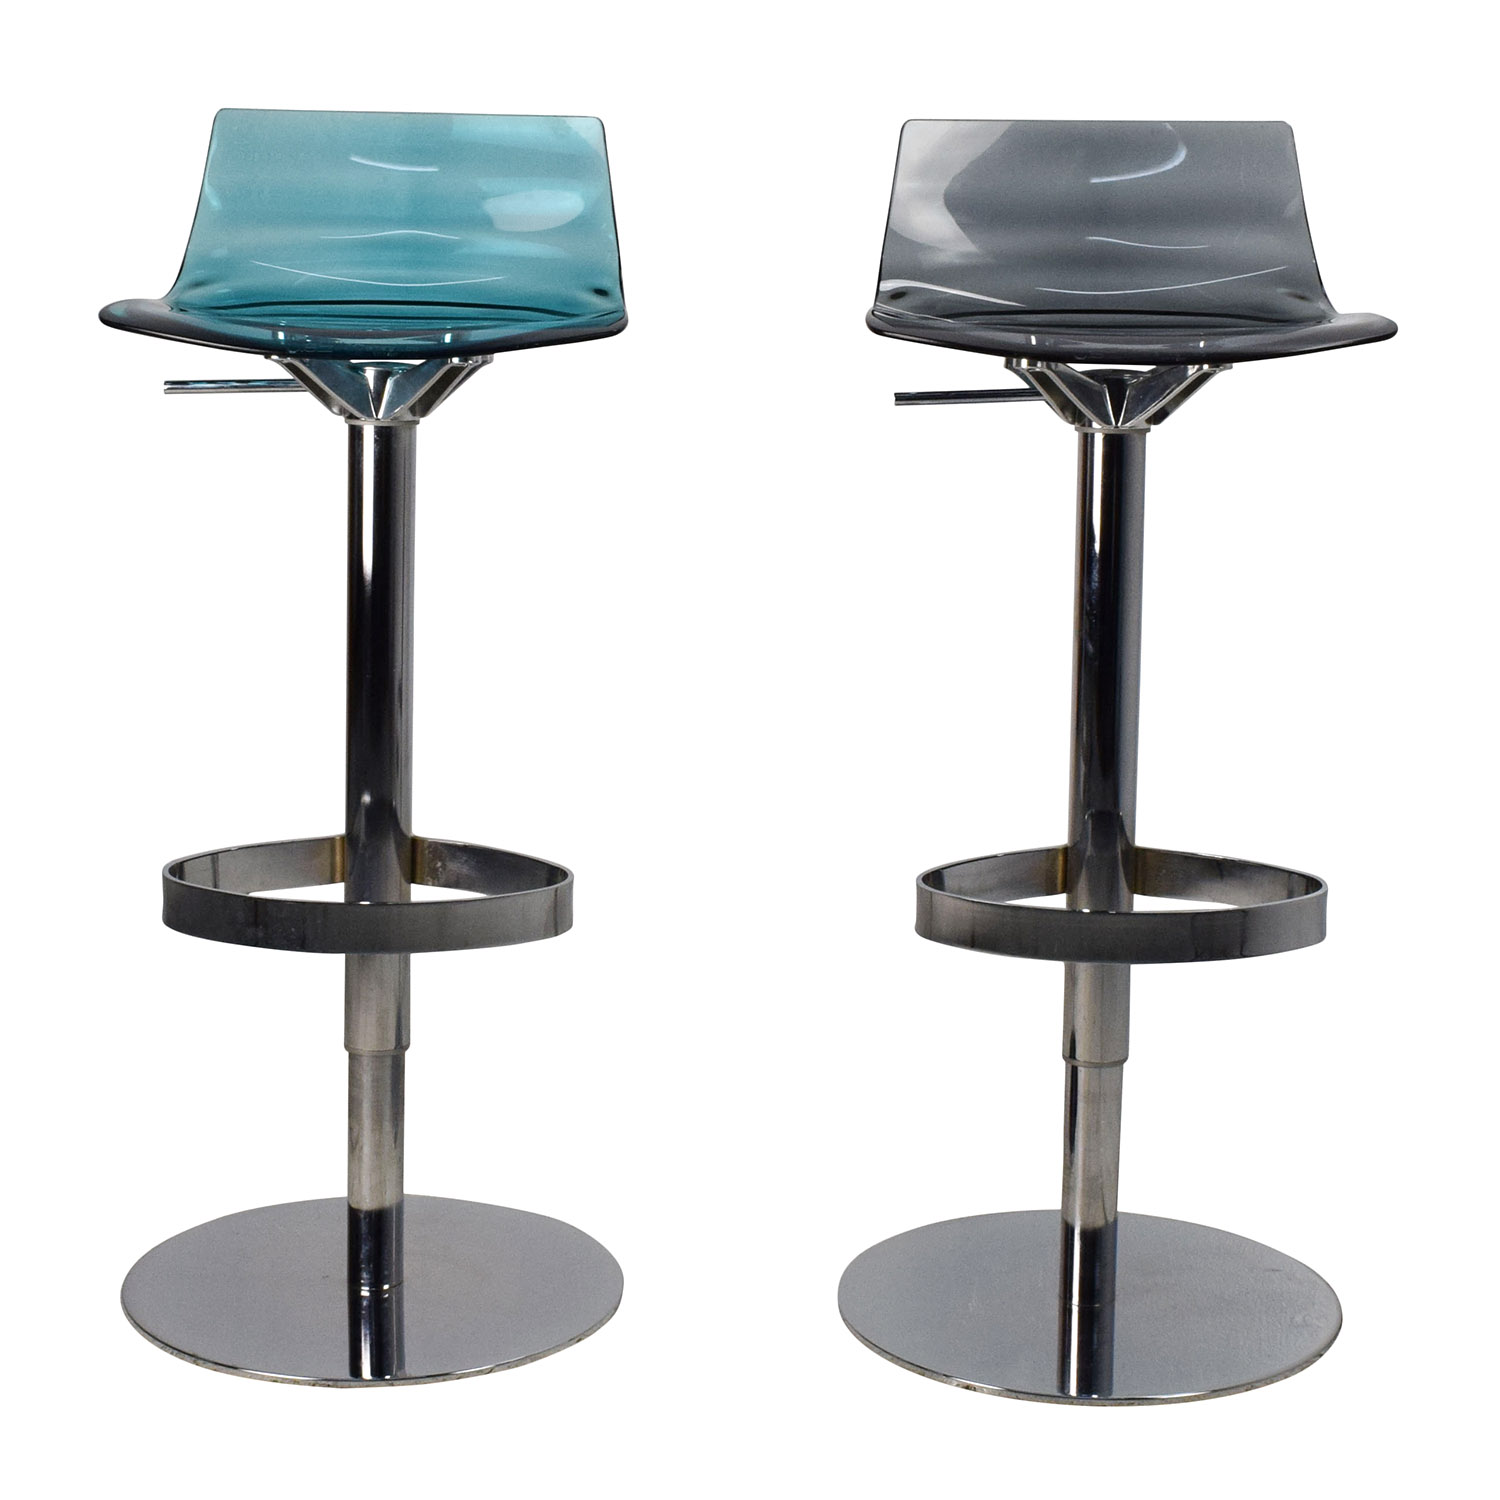 stool chair second hand outdoor and ottoman 82 off moroso fjord white leather barstools chairs calligaris leau adjustable swivel bar pair